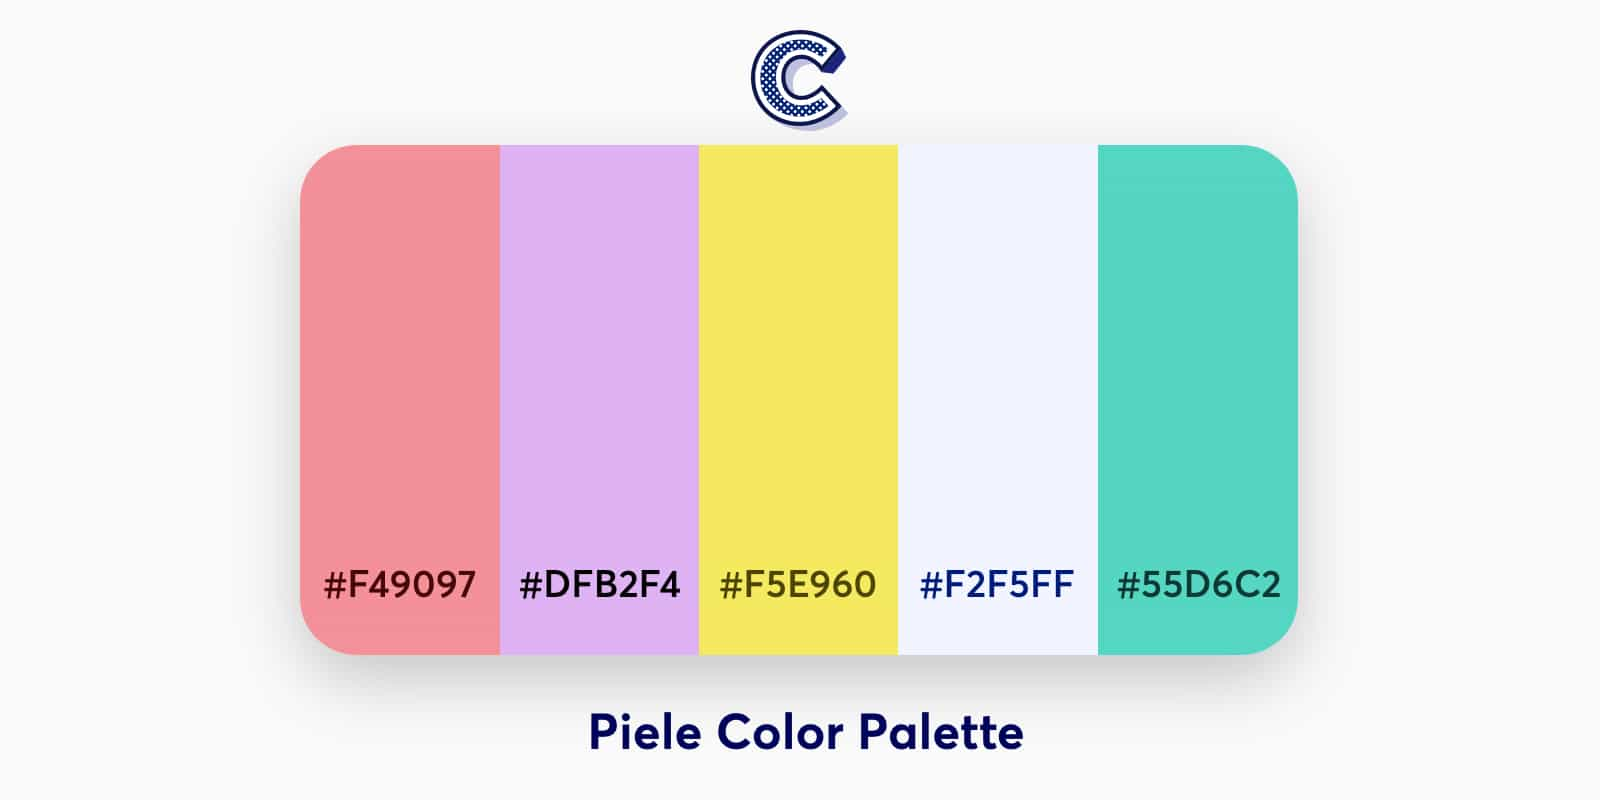 the featured image of piele color palette